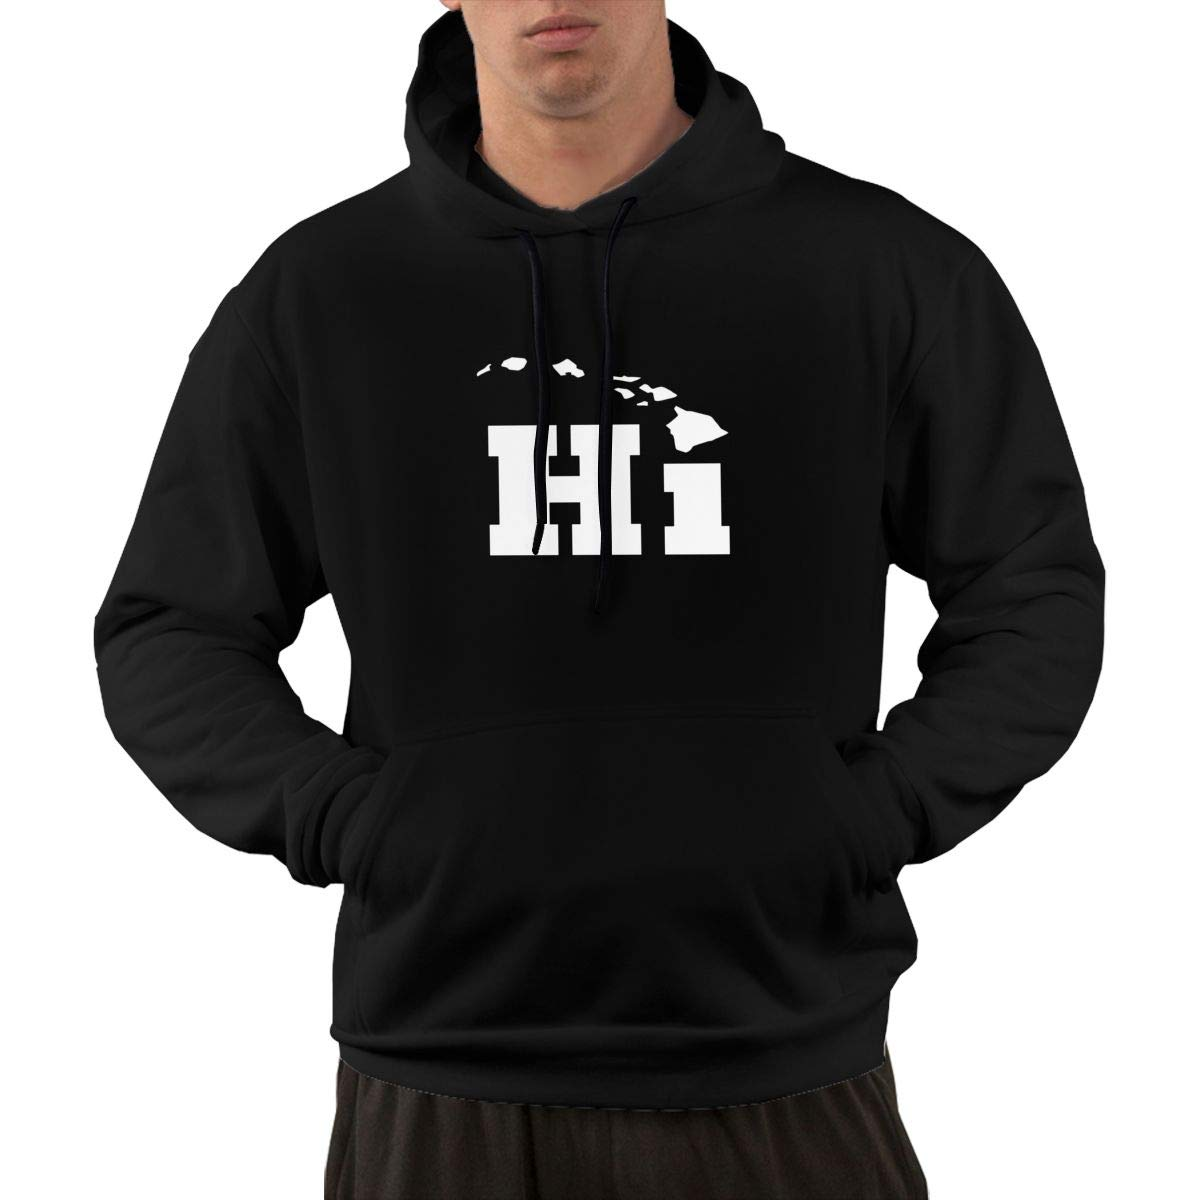 Hi with Hawaii Island Logo Hoodie Mens Fashion Long Sleeve Sweatshirts Hoodie Shirt with Front Pocket